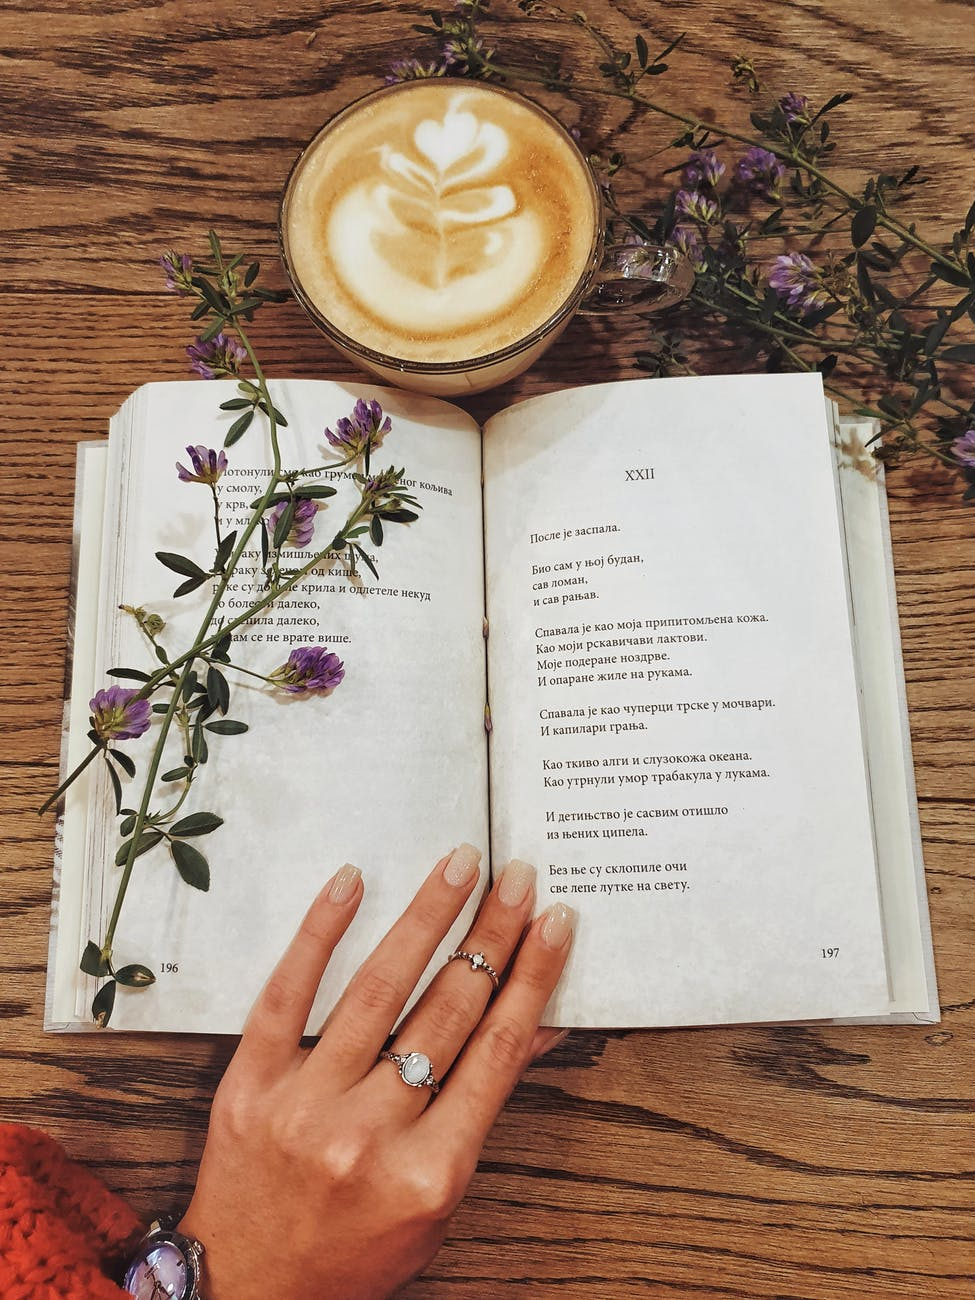 beverage in cup next to open book